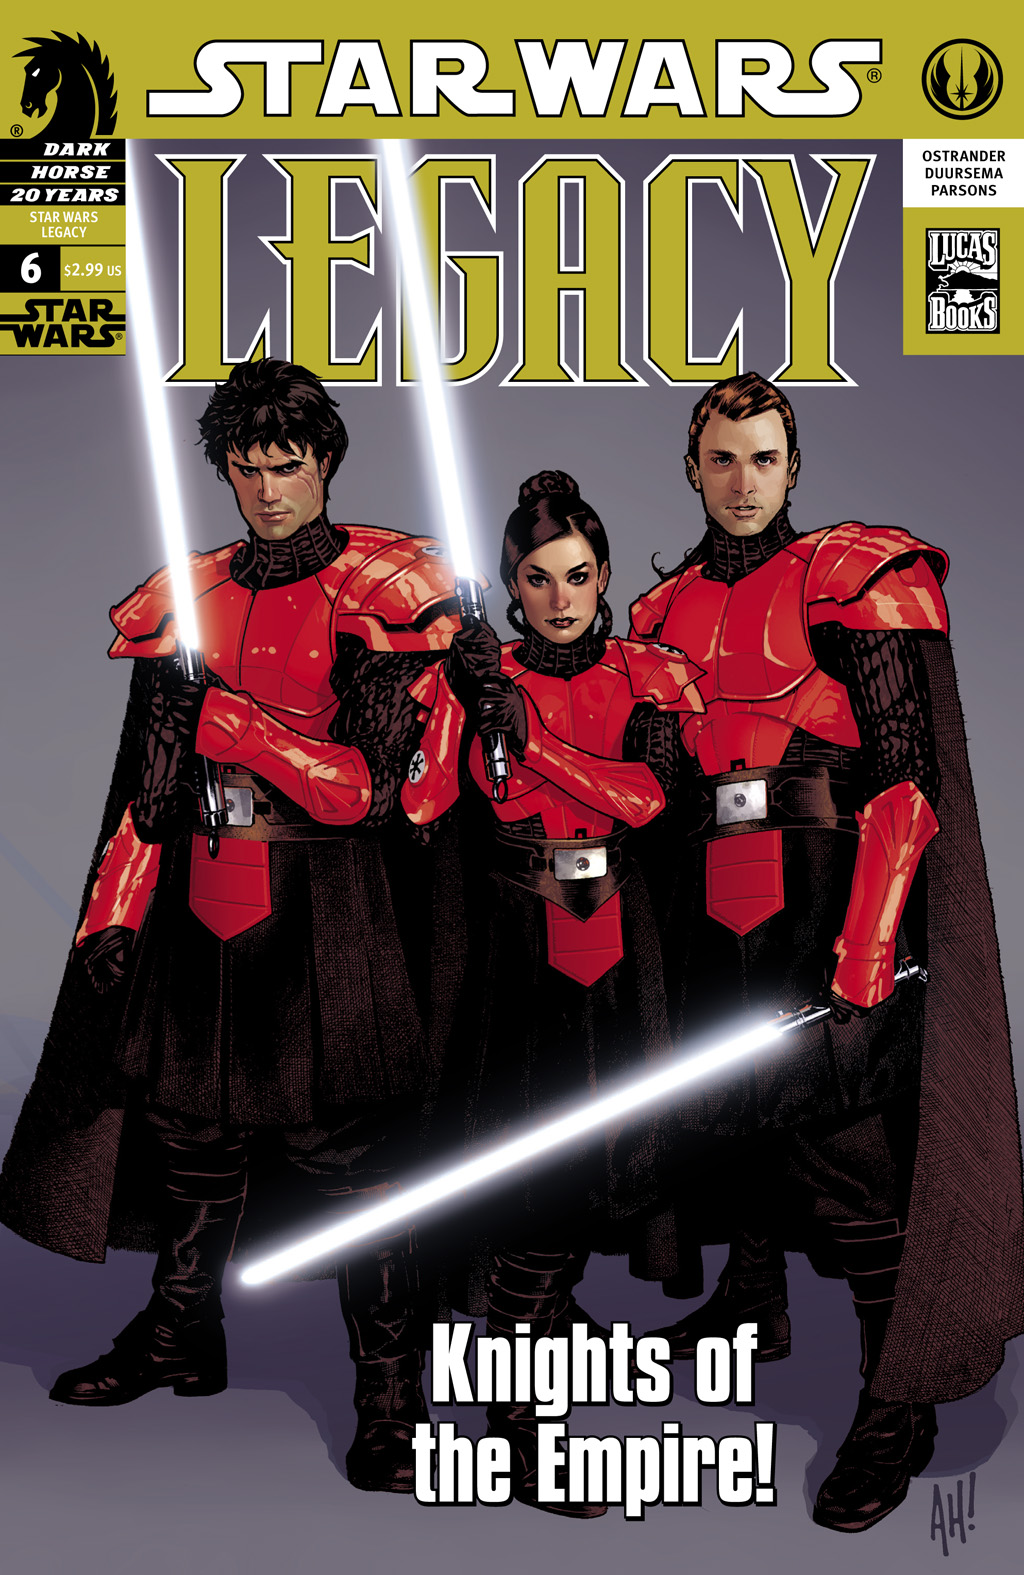 Star Wars: Legacy (2006) issue 6 - Page 1